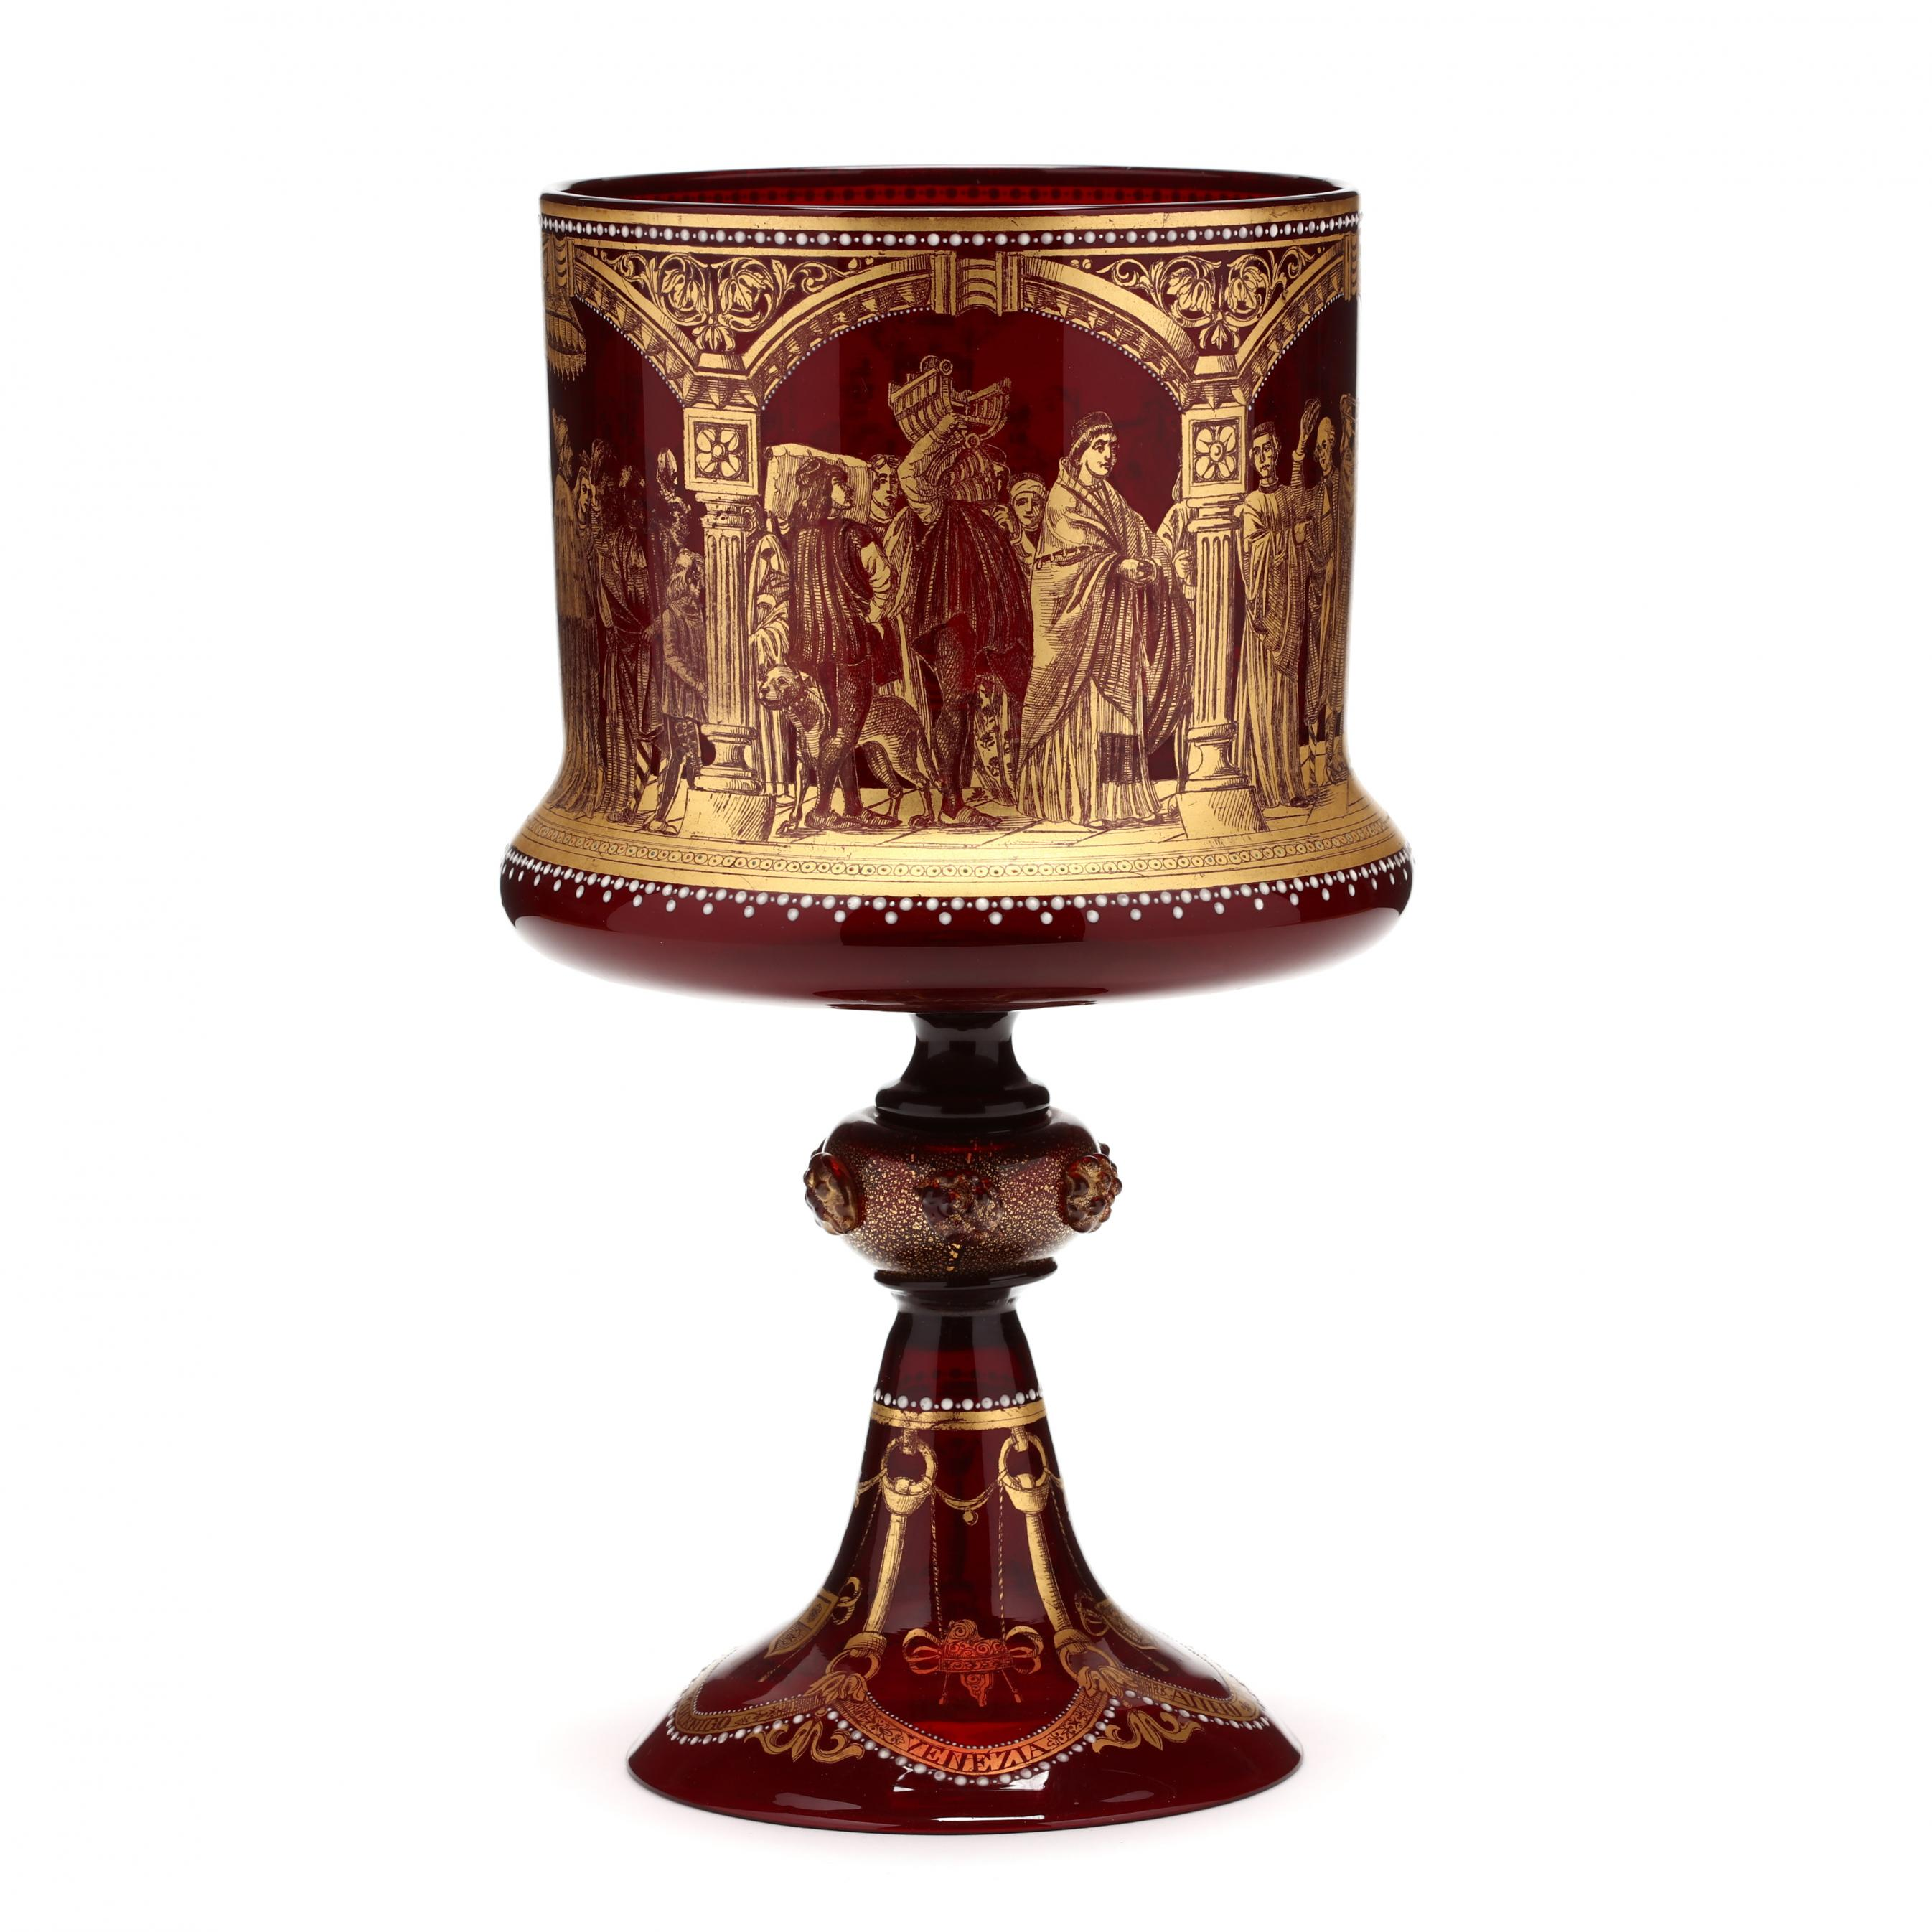 venetian-gilt-decorated-chalice-of-the-mocenigo-family